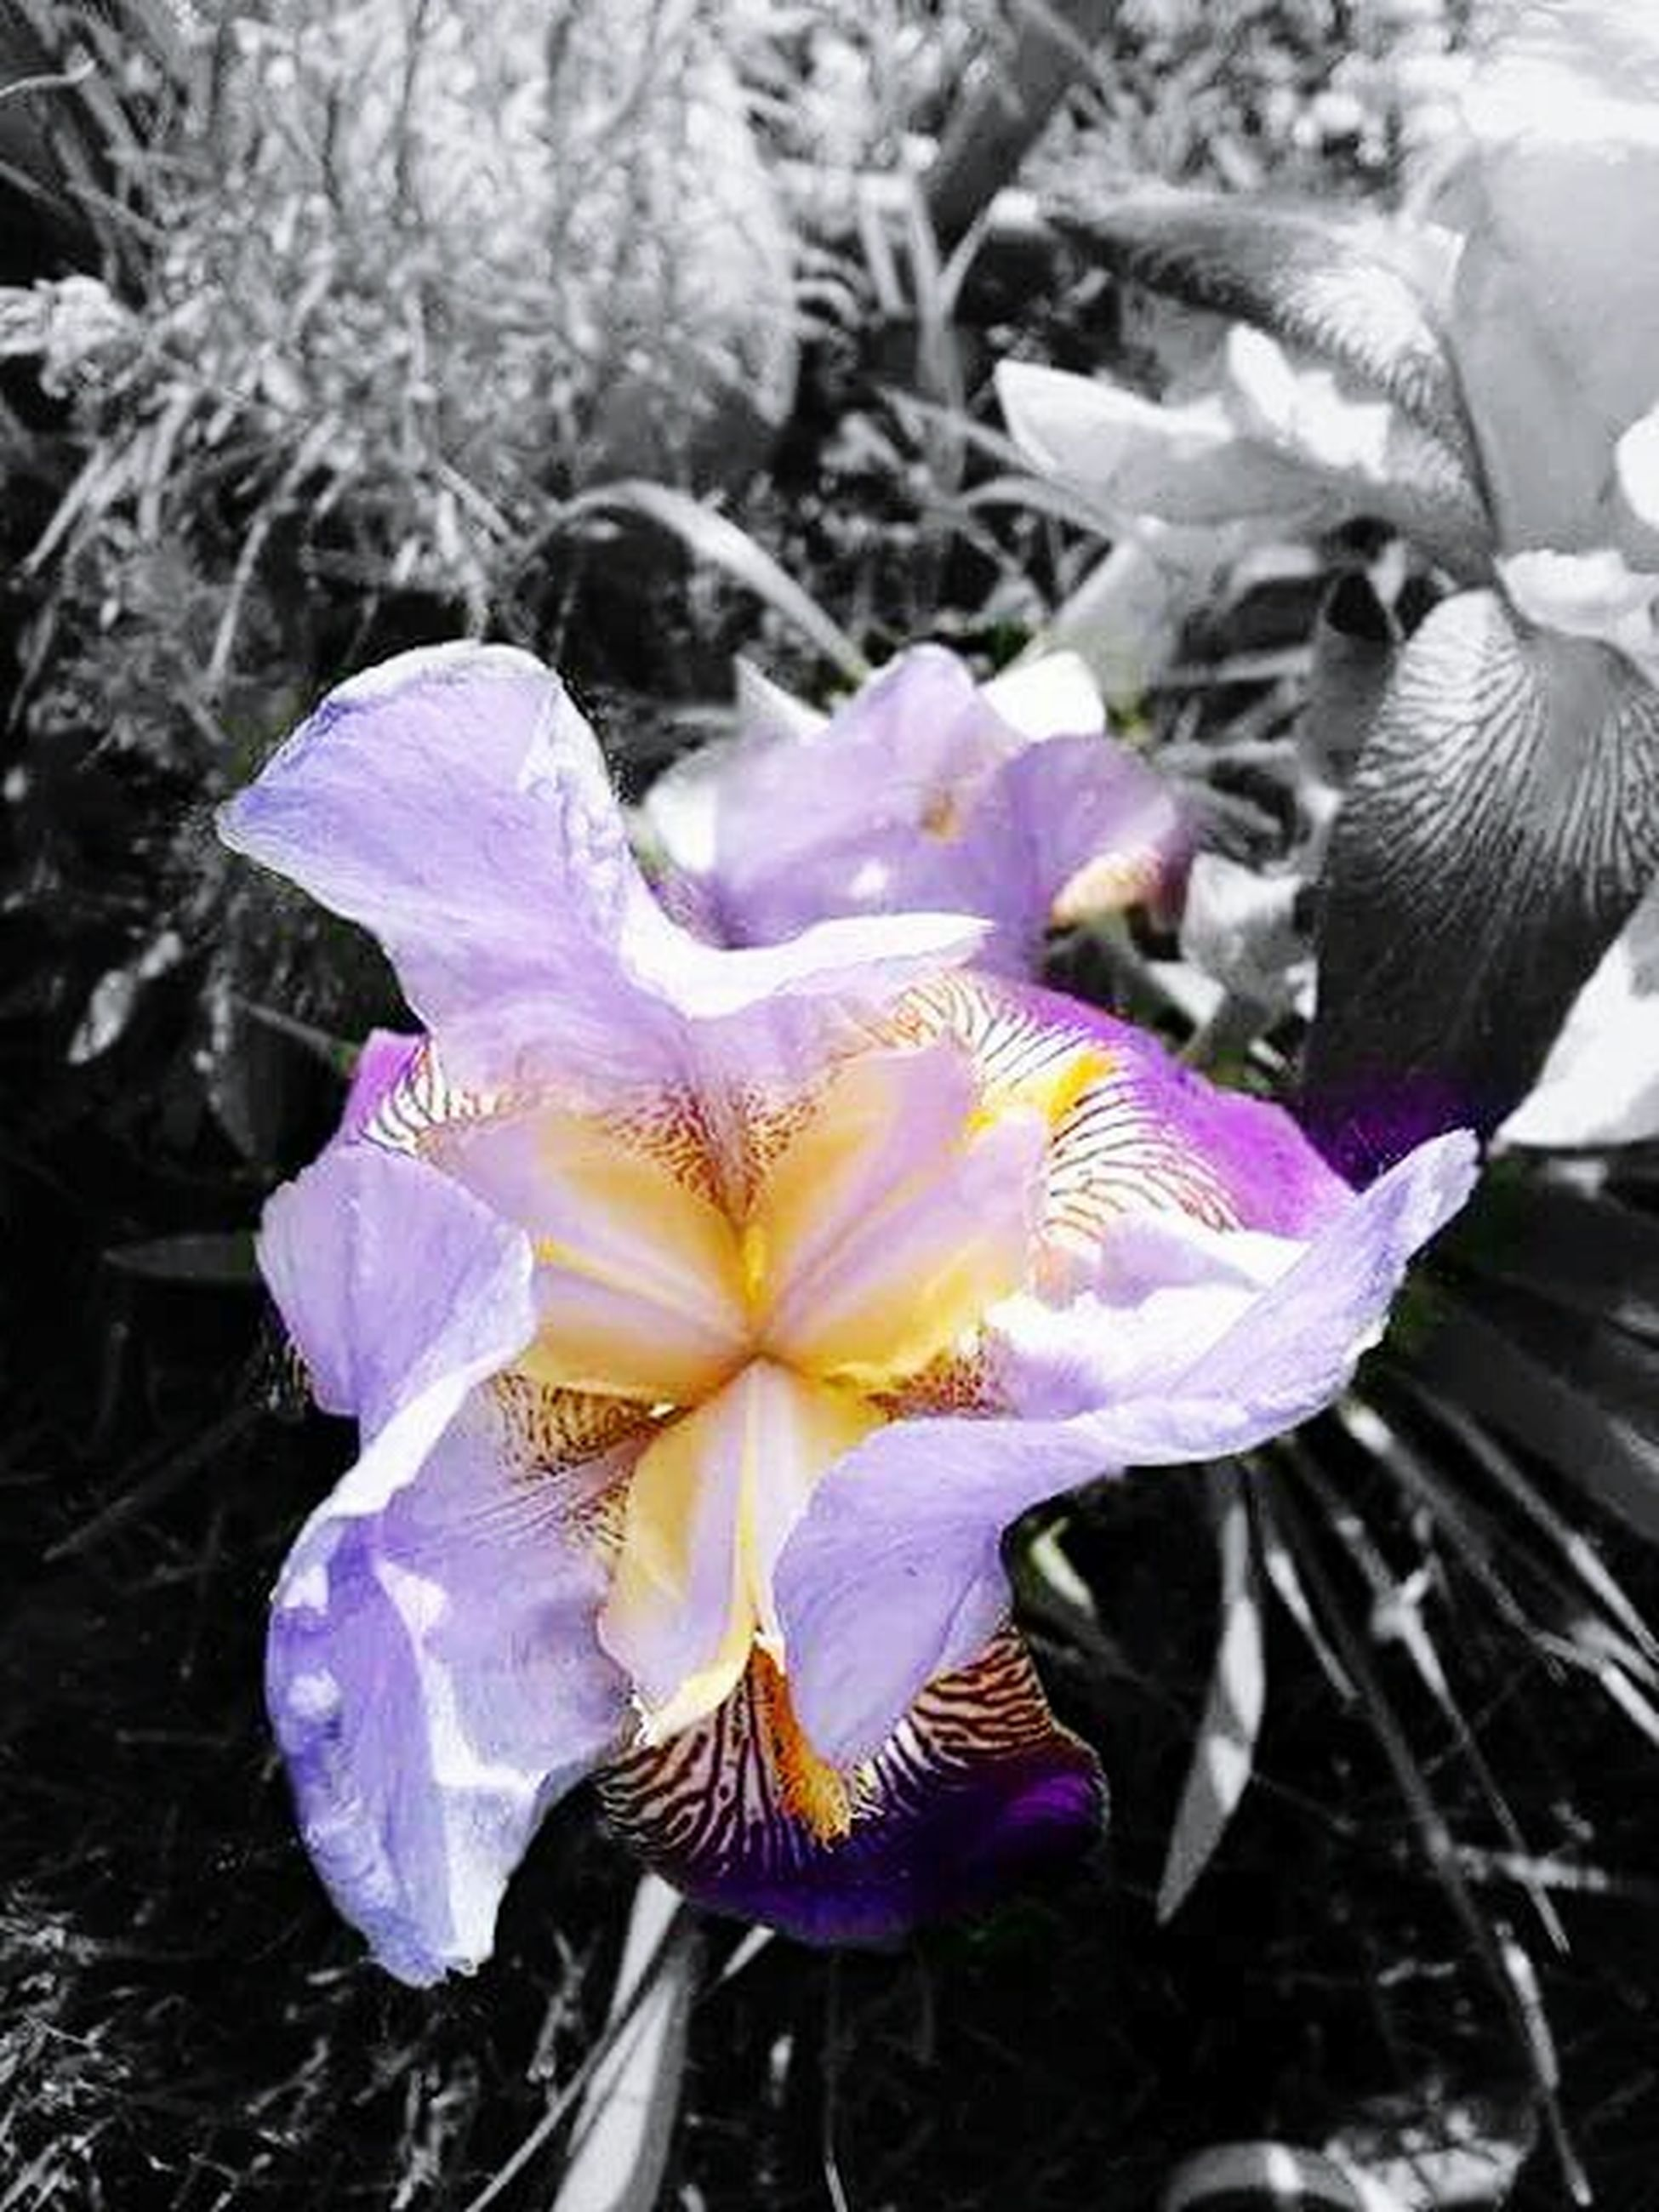 flower, purple, petal, fragility, flower head, close-up, beauty in nature, freshness, nature, focus on foreground, growth, blooming, plant, natural pattern, pollen, high angle view, no people, single flower, day, outdoors